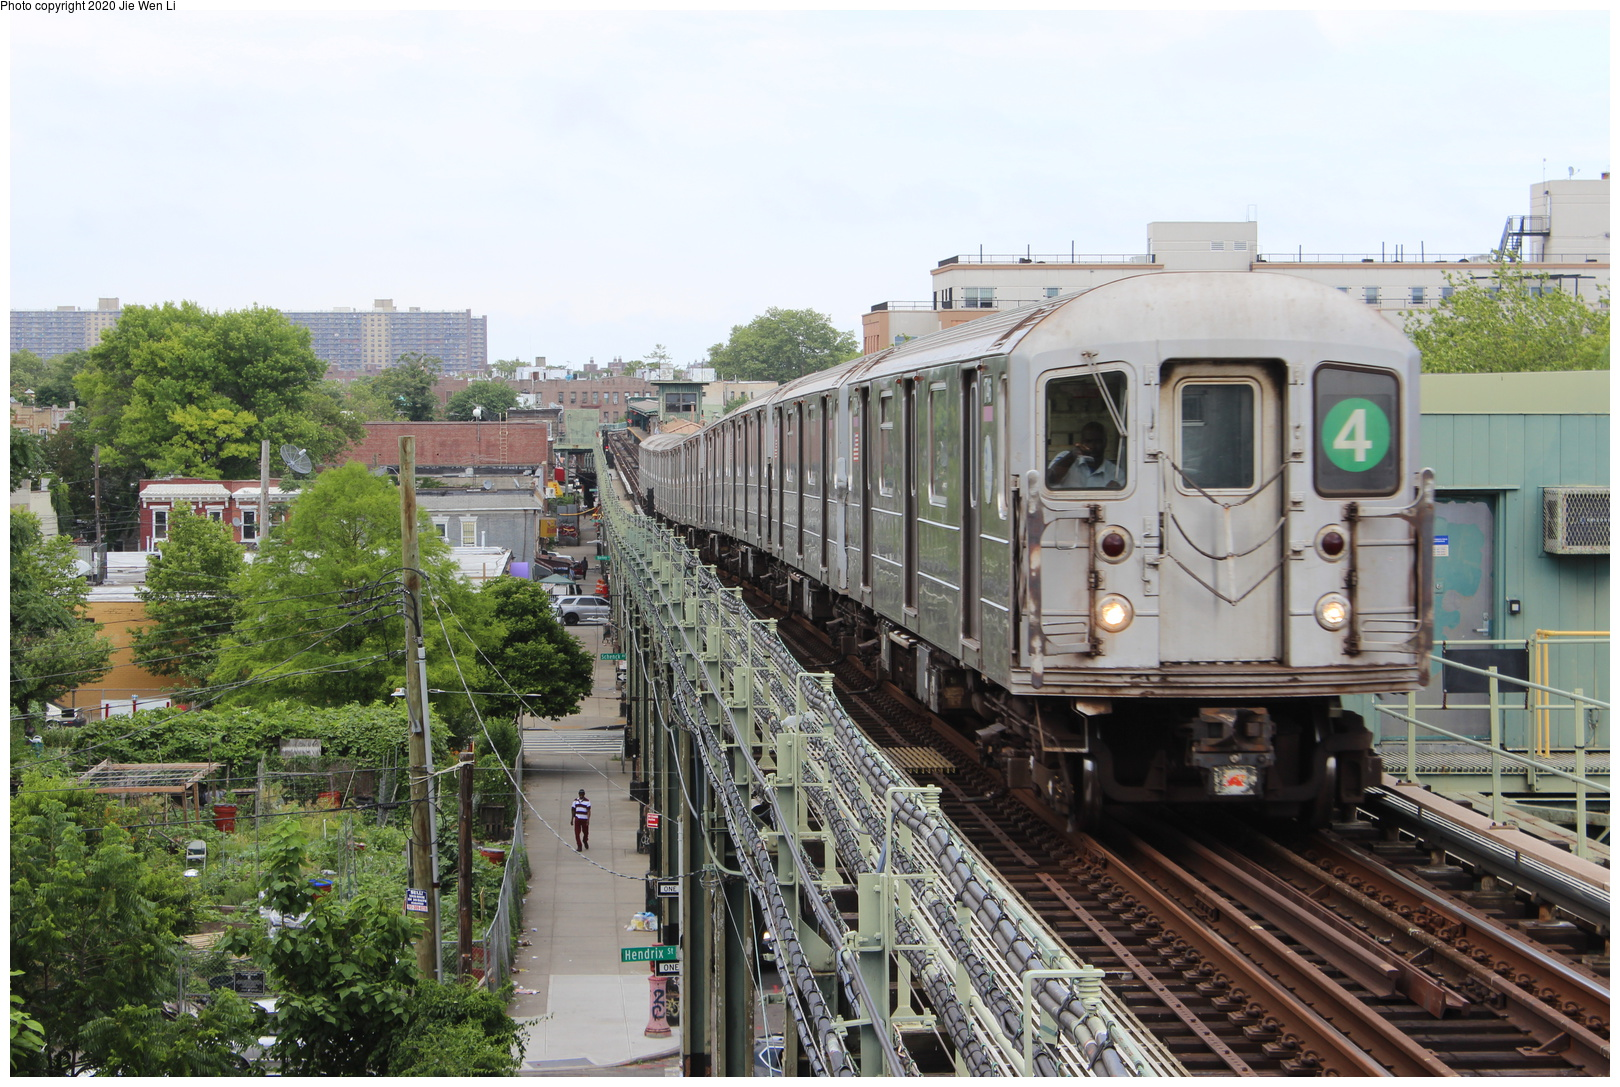 (267k, 1044x726)<br><b>Country:</b> United States<br><b>City:</b> New York<br><b>System:</b> New York City Transit<br><b>Line:</b> BMT Myrtle Avenue Line<br><b>Location:</b> Metropolitan Avenue <br><b>Car:</b> BMT Multi  <br><b>Photo by:</b> Joel Shanus<br><b>Viewed (this week/total):</b> 0 / 2485